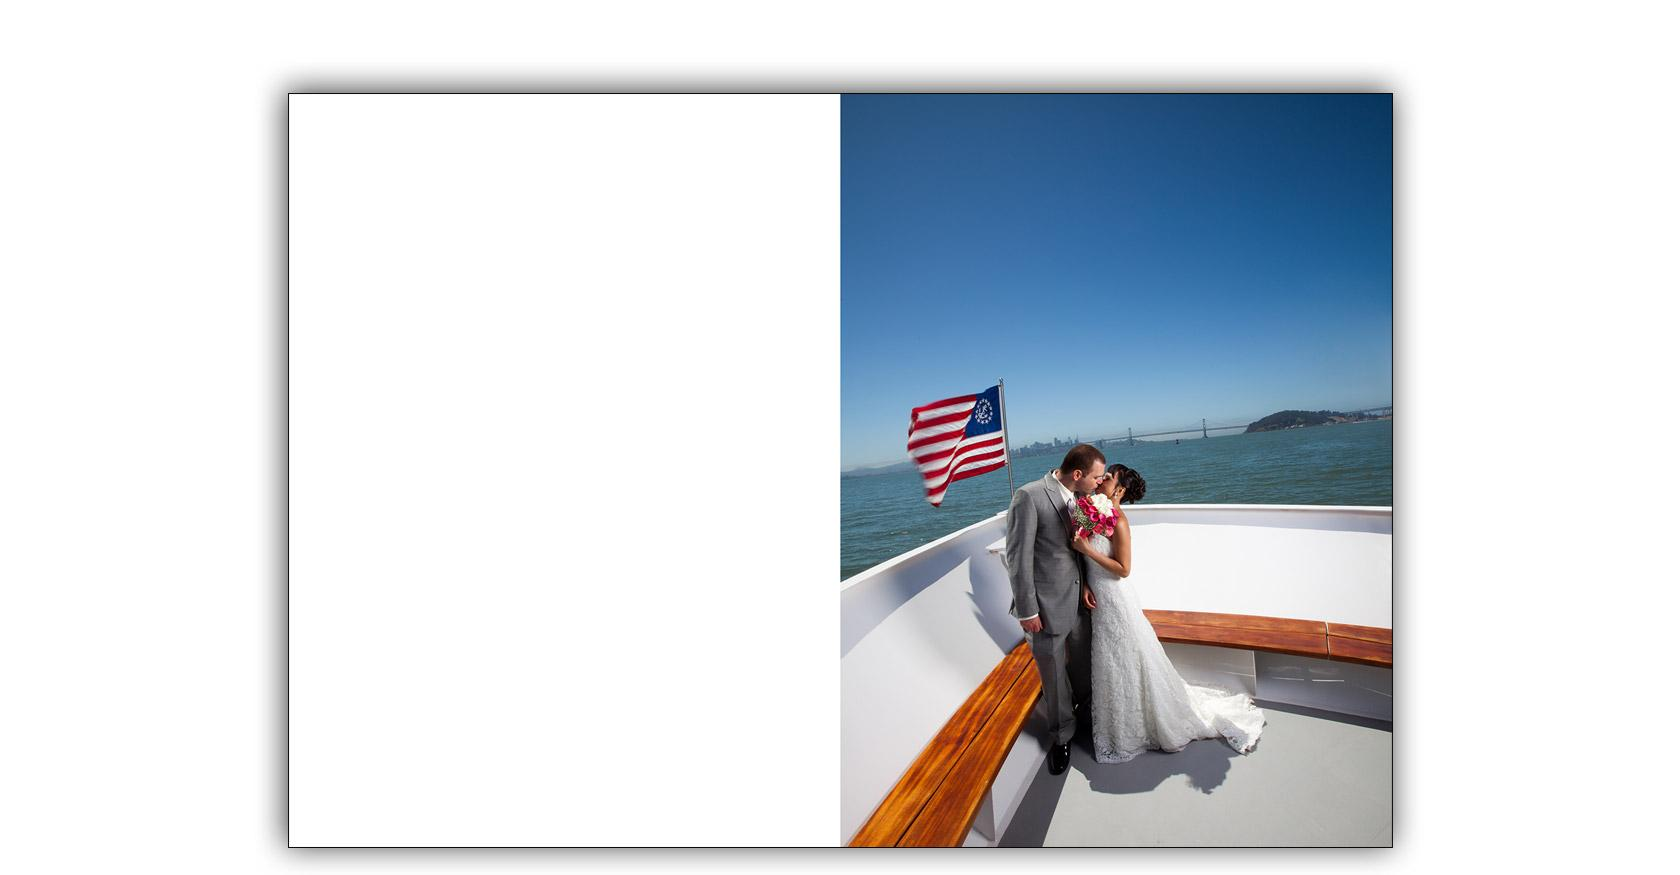 San Francisco Bay yacht boat wedding cruise Commodore Events Merlot photography album 01